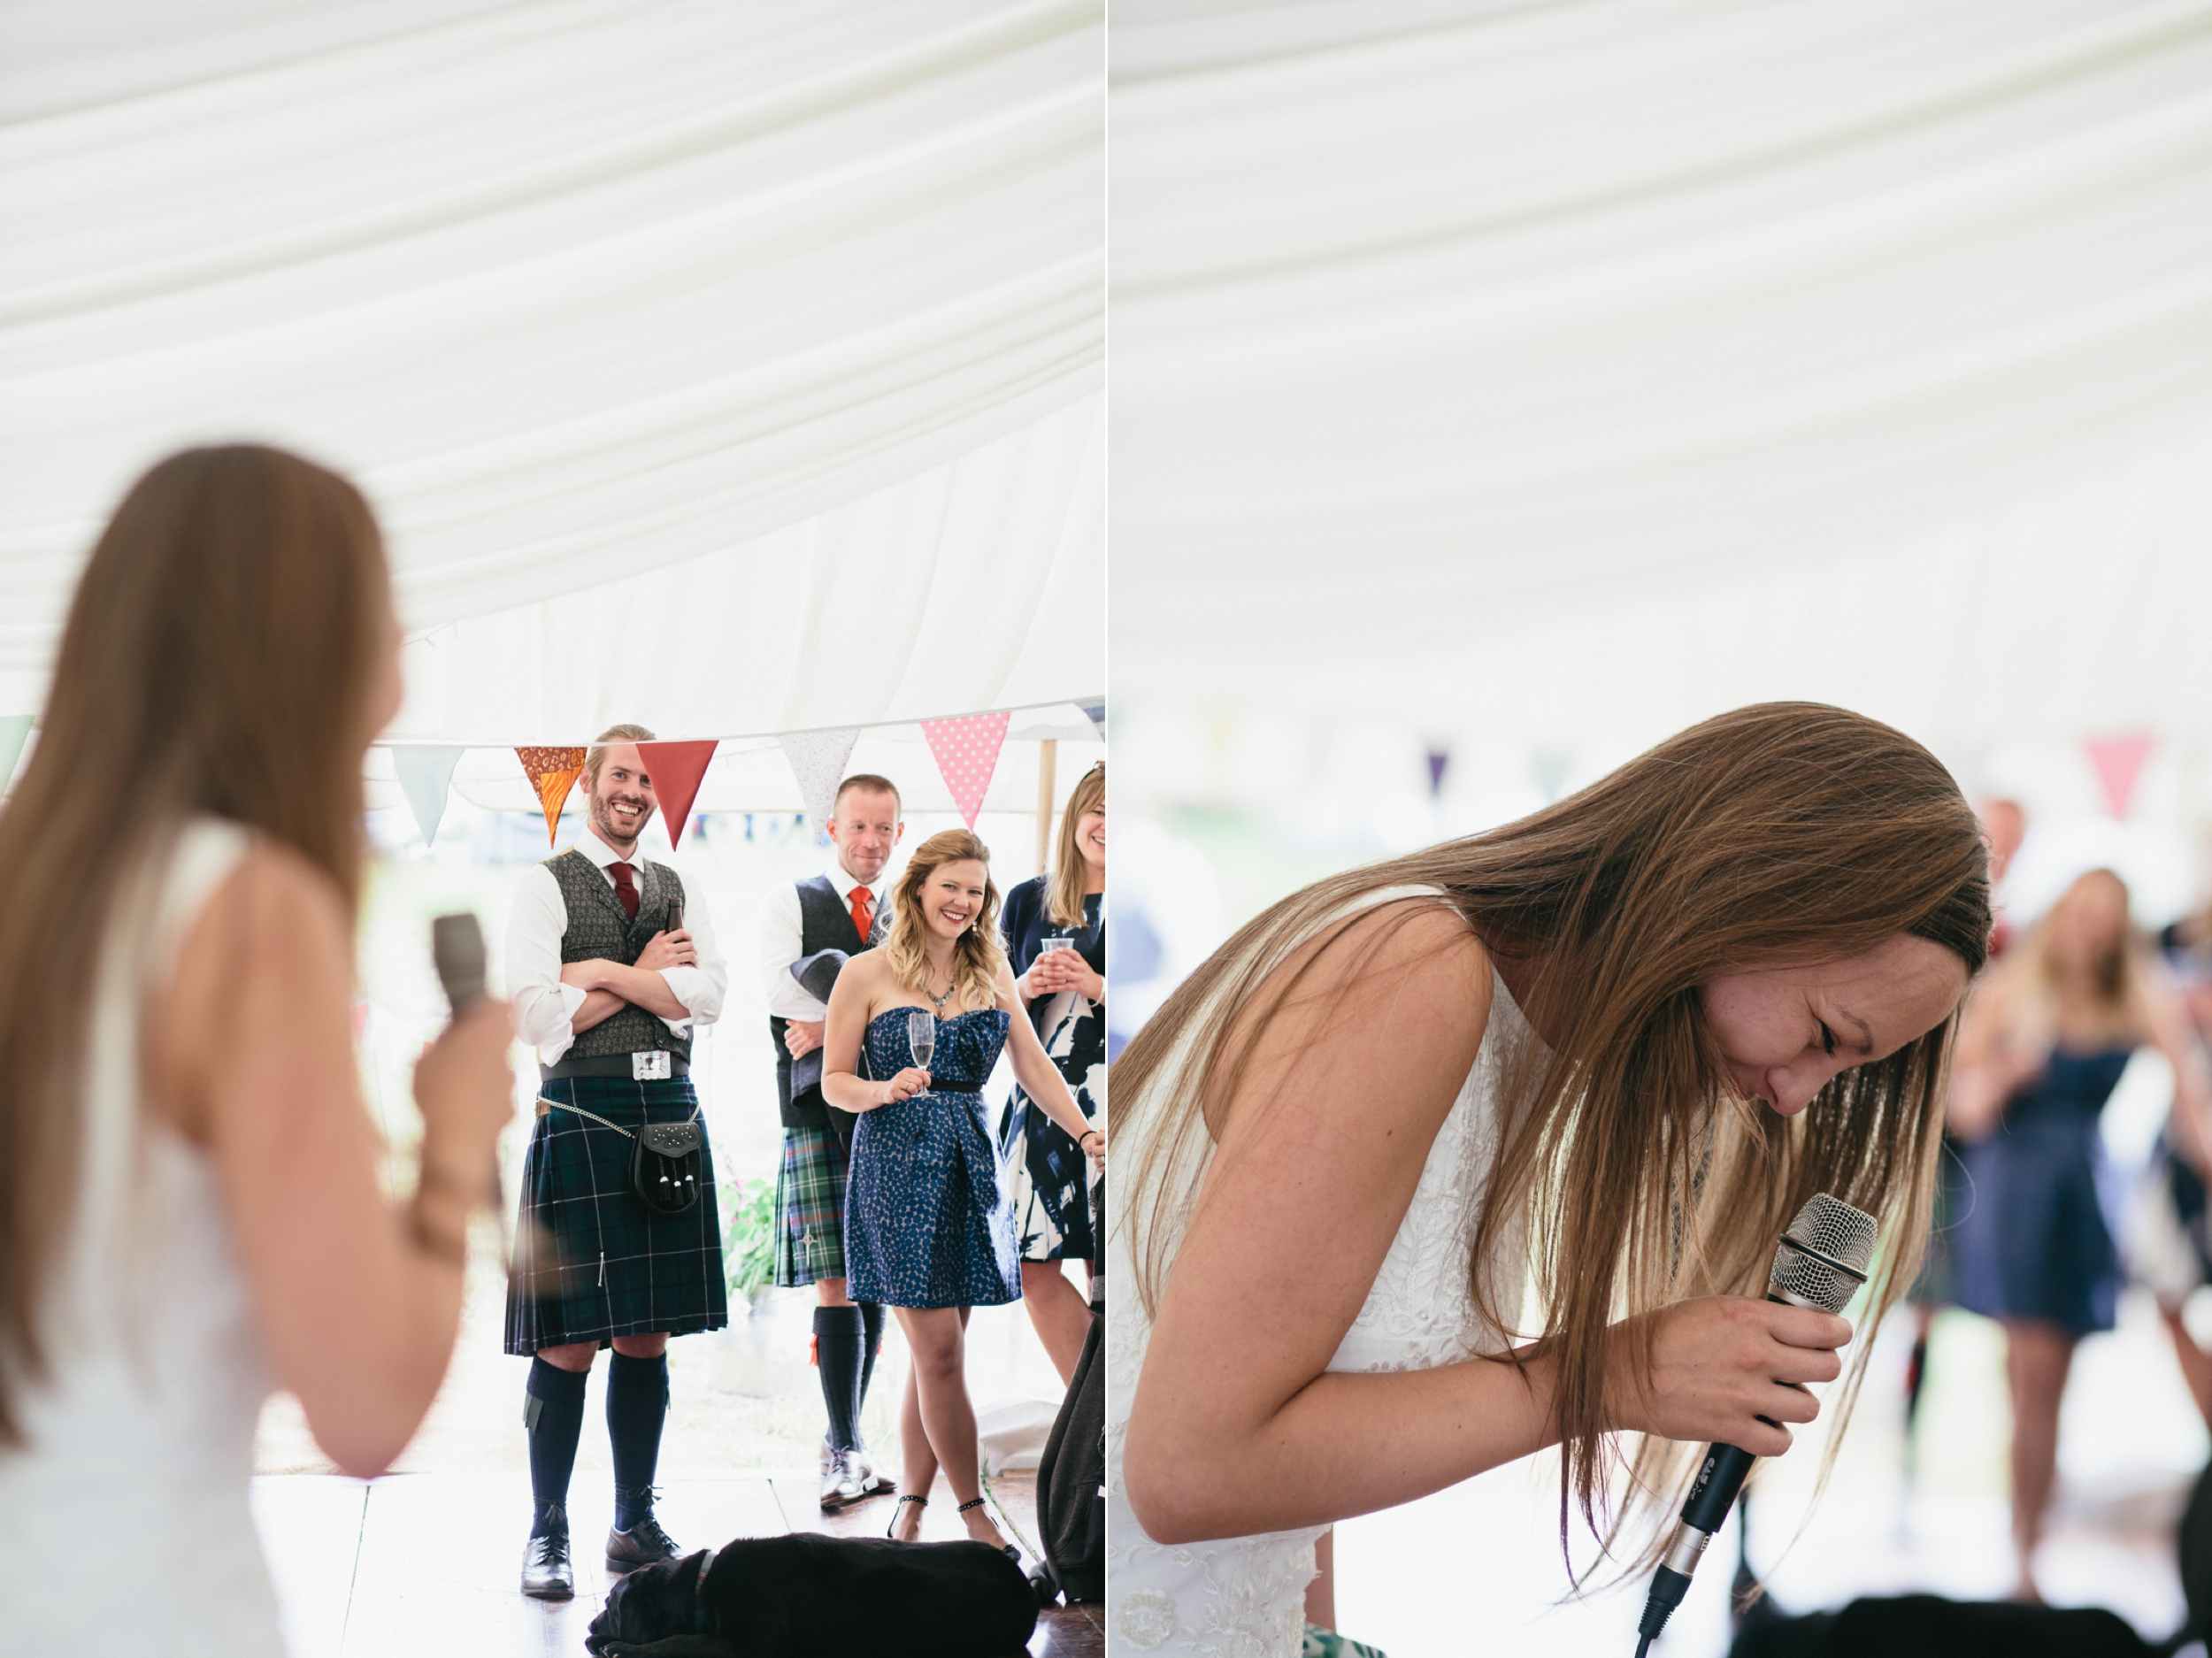 Alternative Quirky Wedding Photographer Scotland Borders Edinburgh 110.jpg